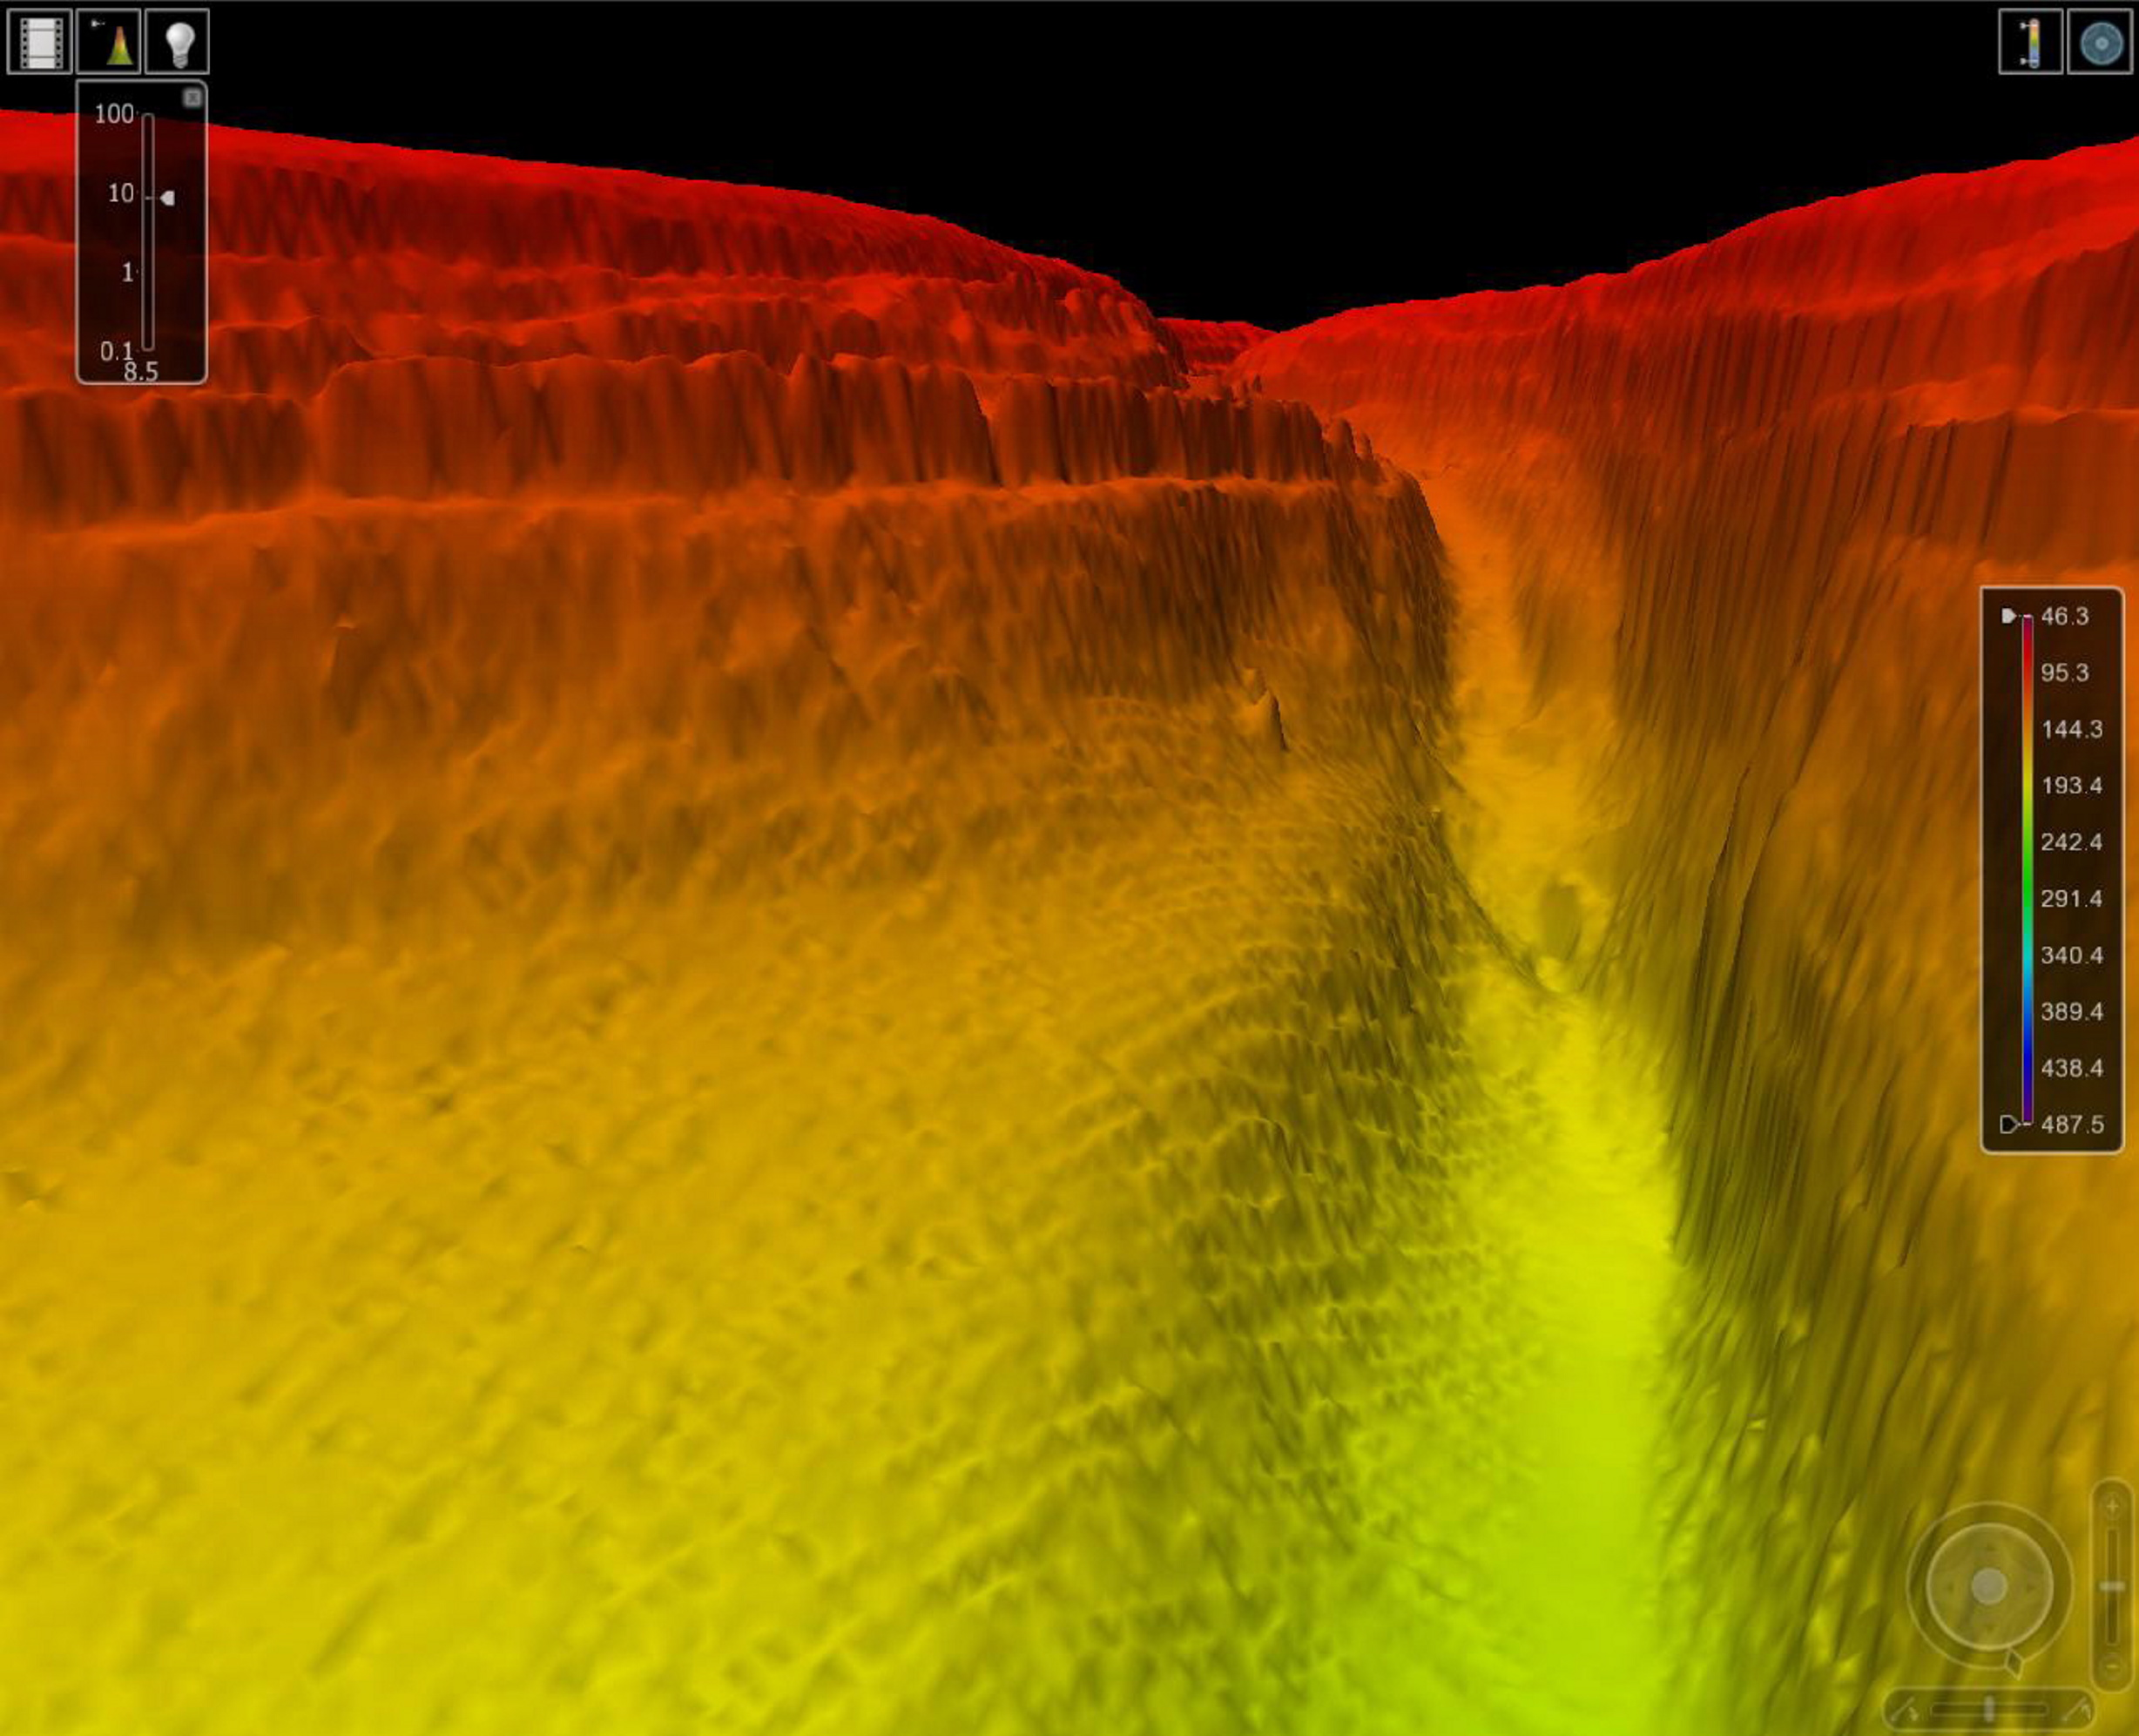 A three-dimensional echo sounding representation of a newly discovered canyon under the Red Sea by survey vessel HMS Enterprise.